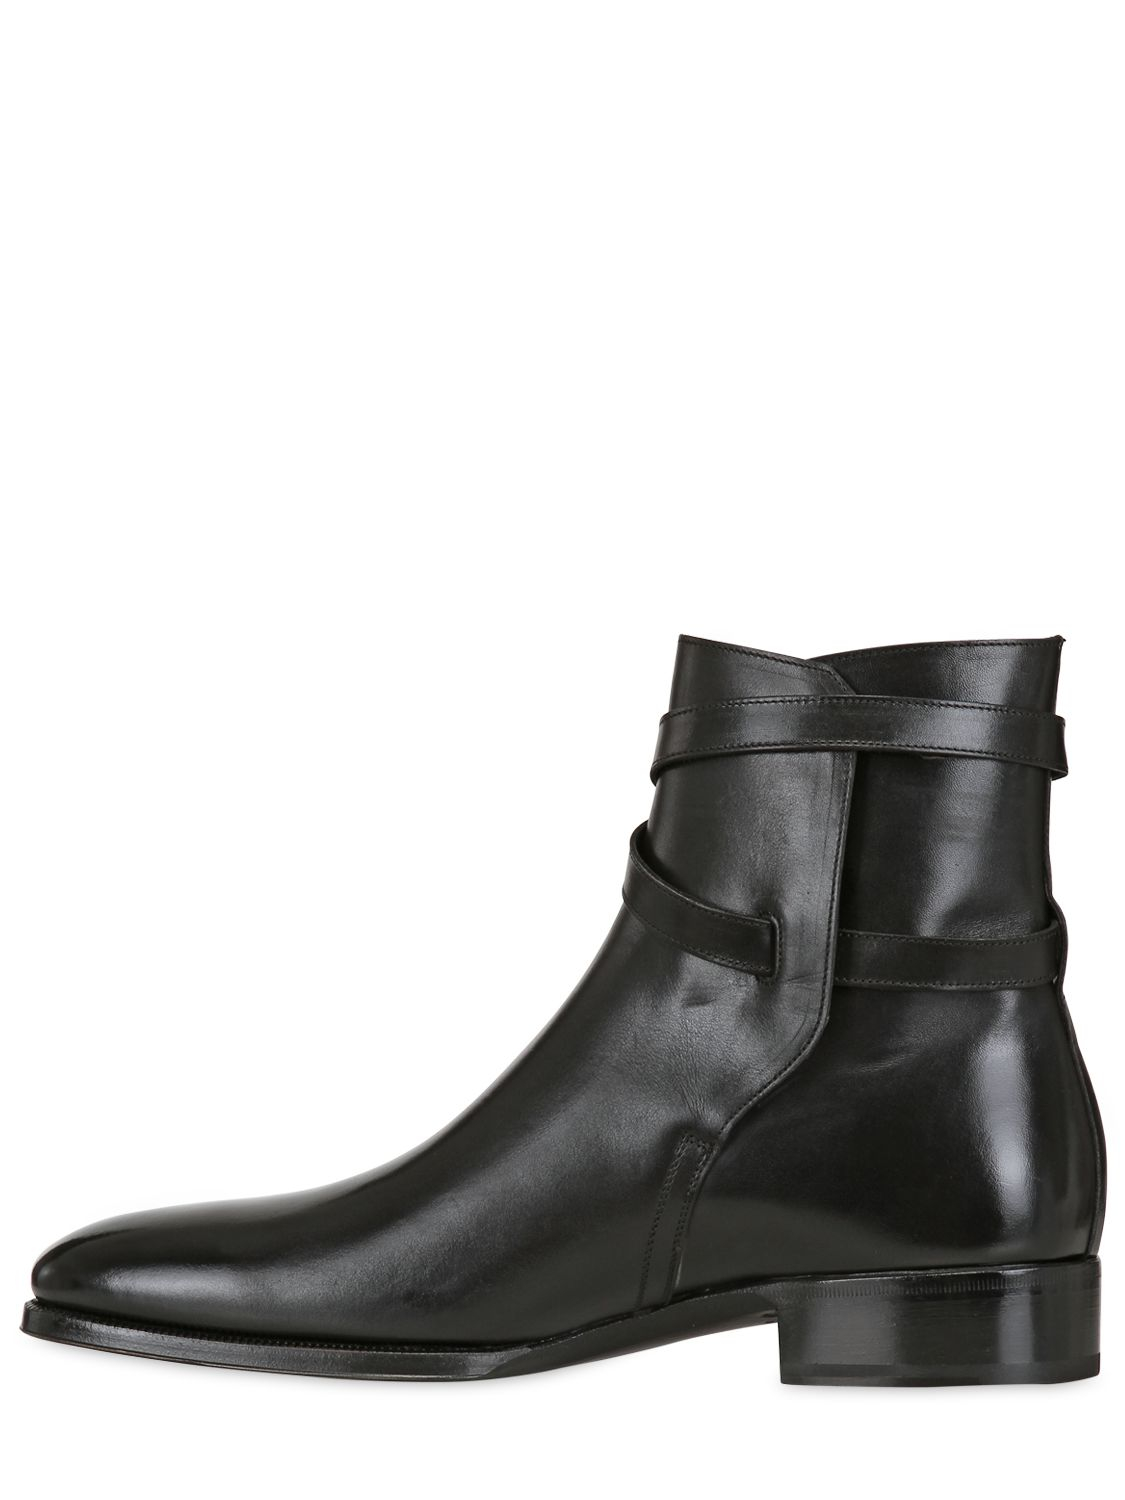 Lyst Max Verre Leather Belted Ankle Boots In Black For Men